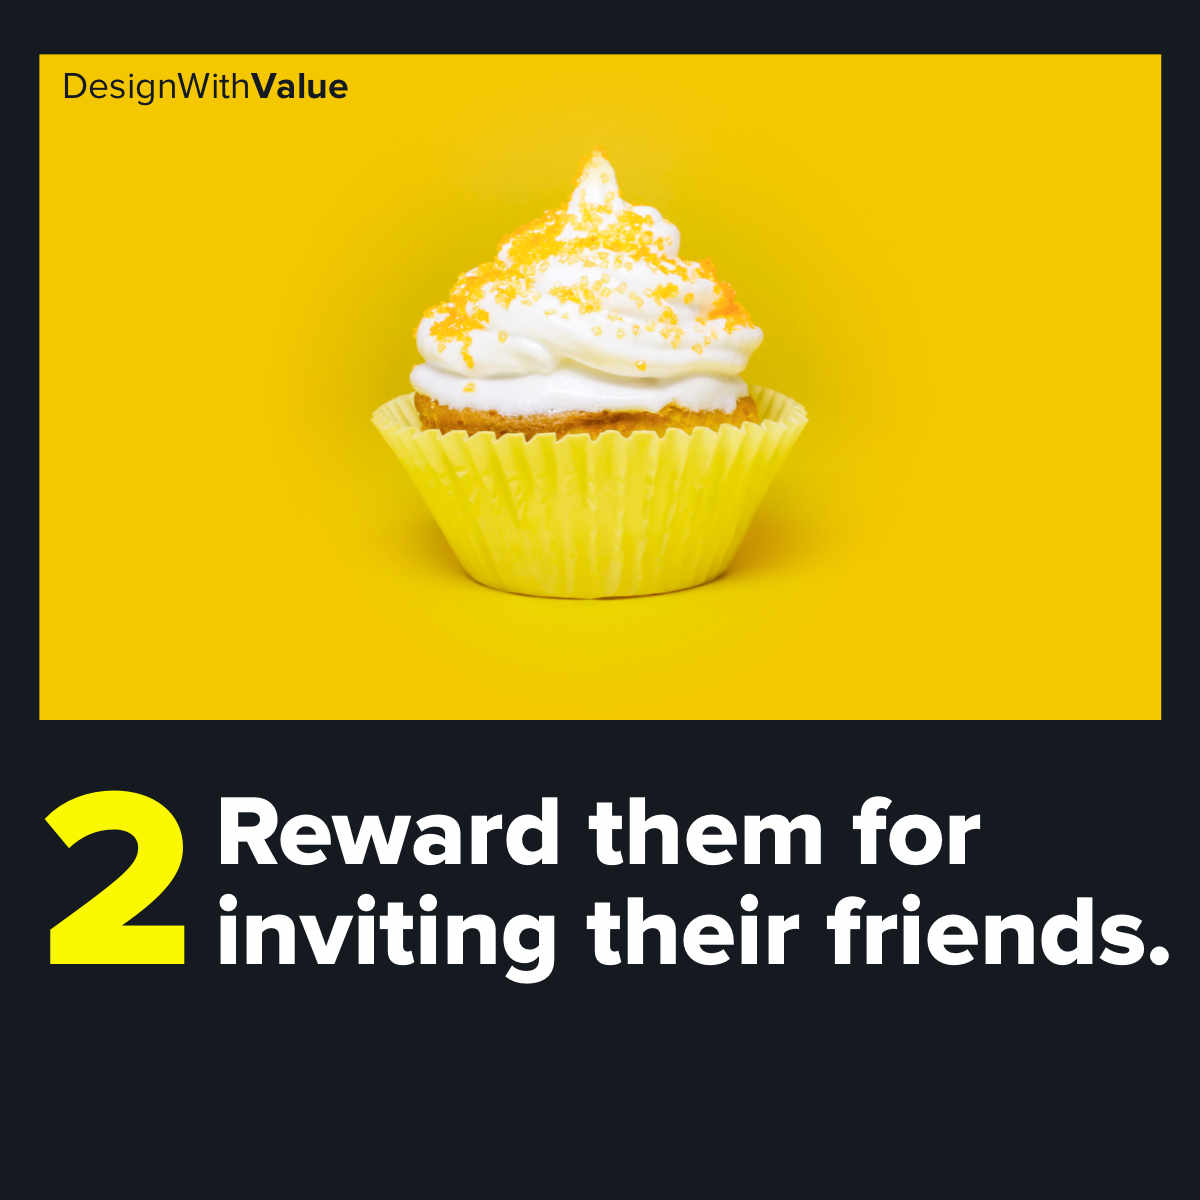 2. Reward them for inviting their friends.